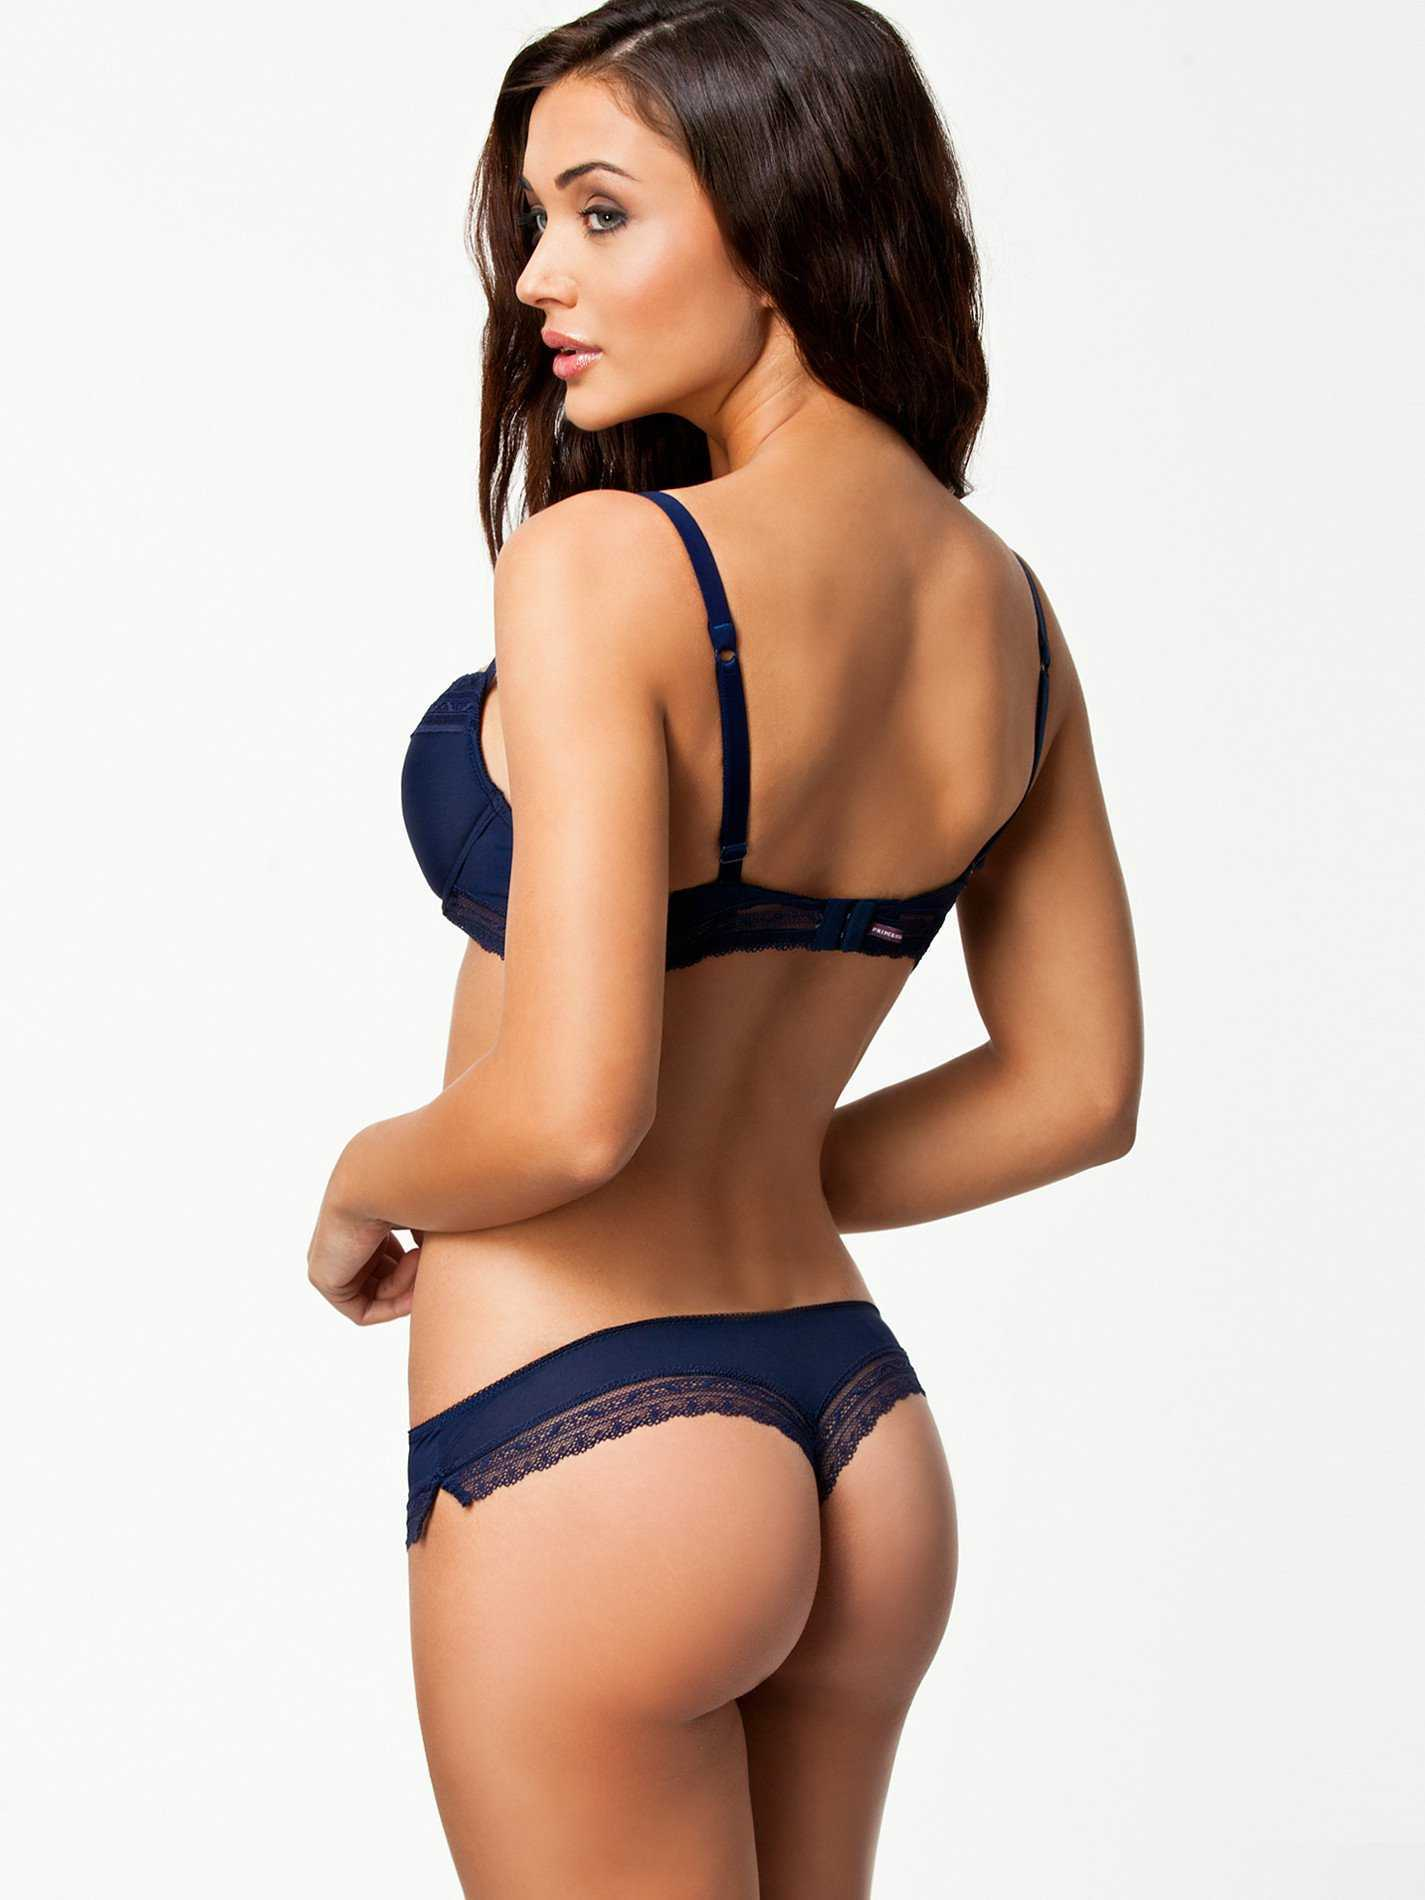 Amy Jackson in Nelly Swimwear and Lingerie Photoshoot